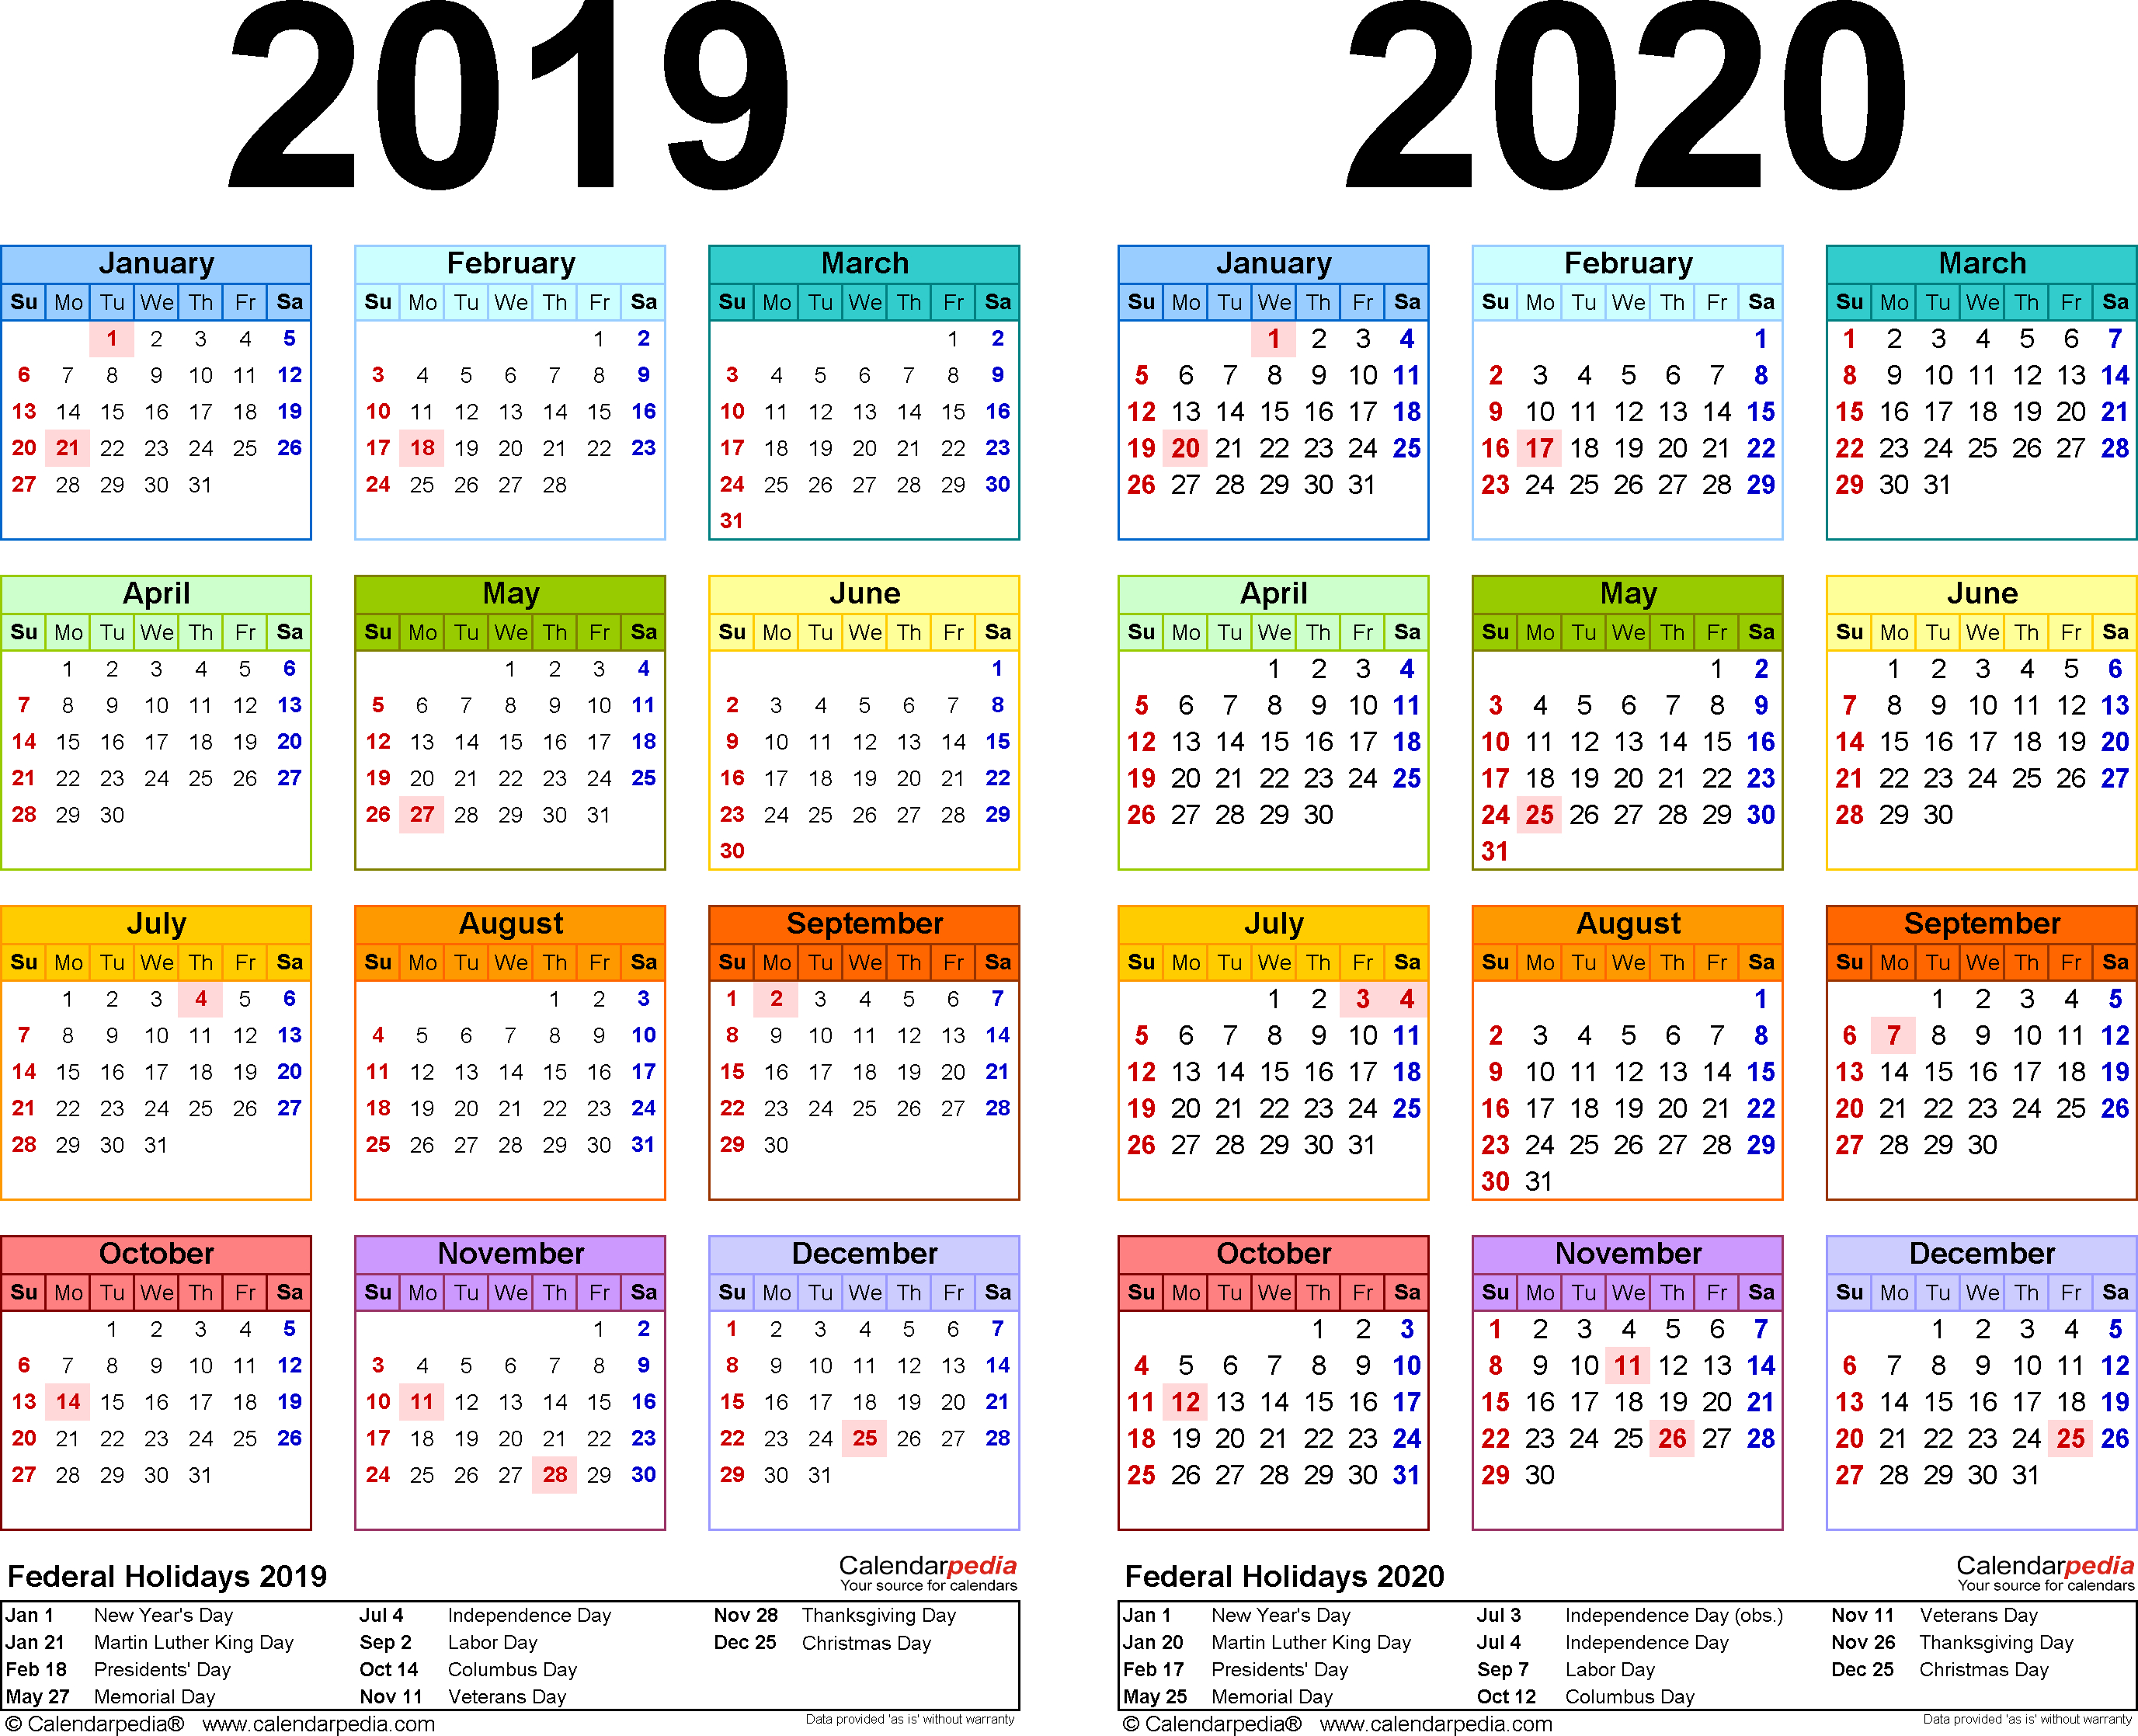 2019-2020 Calendar - Free Printable Two-Year Pdf Calendars within Free Calendar 2020 Printable Without Download